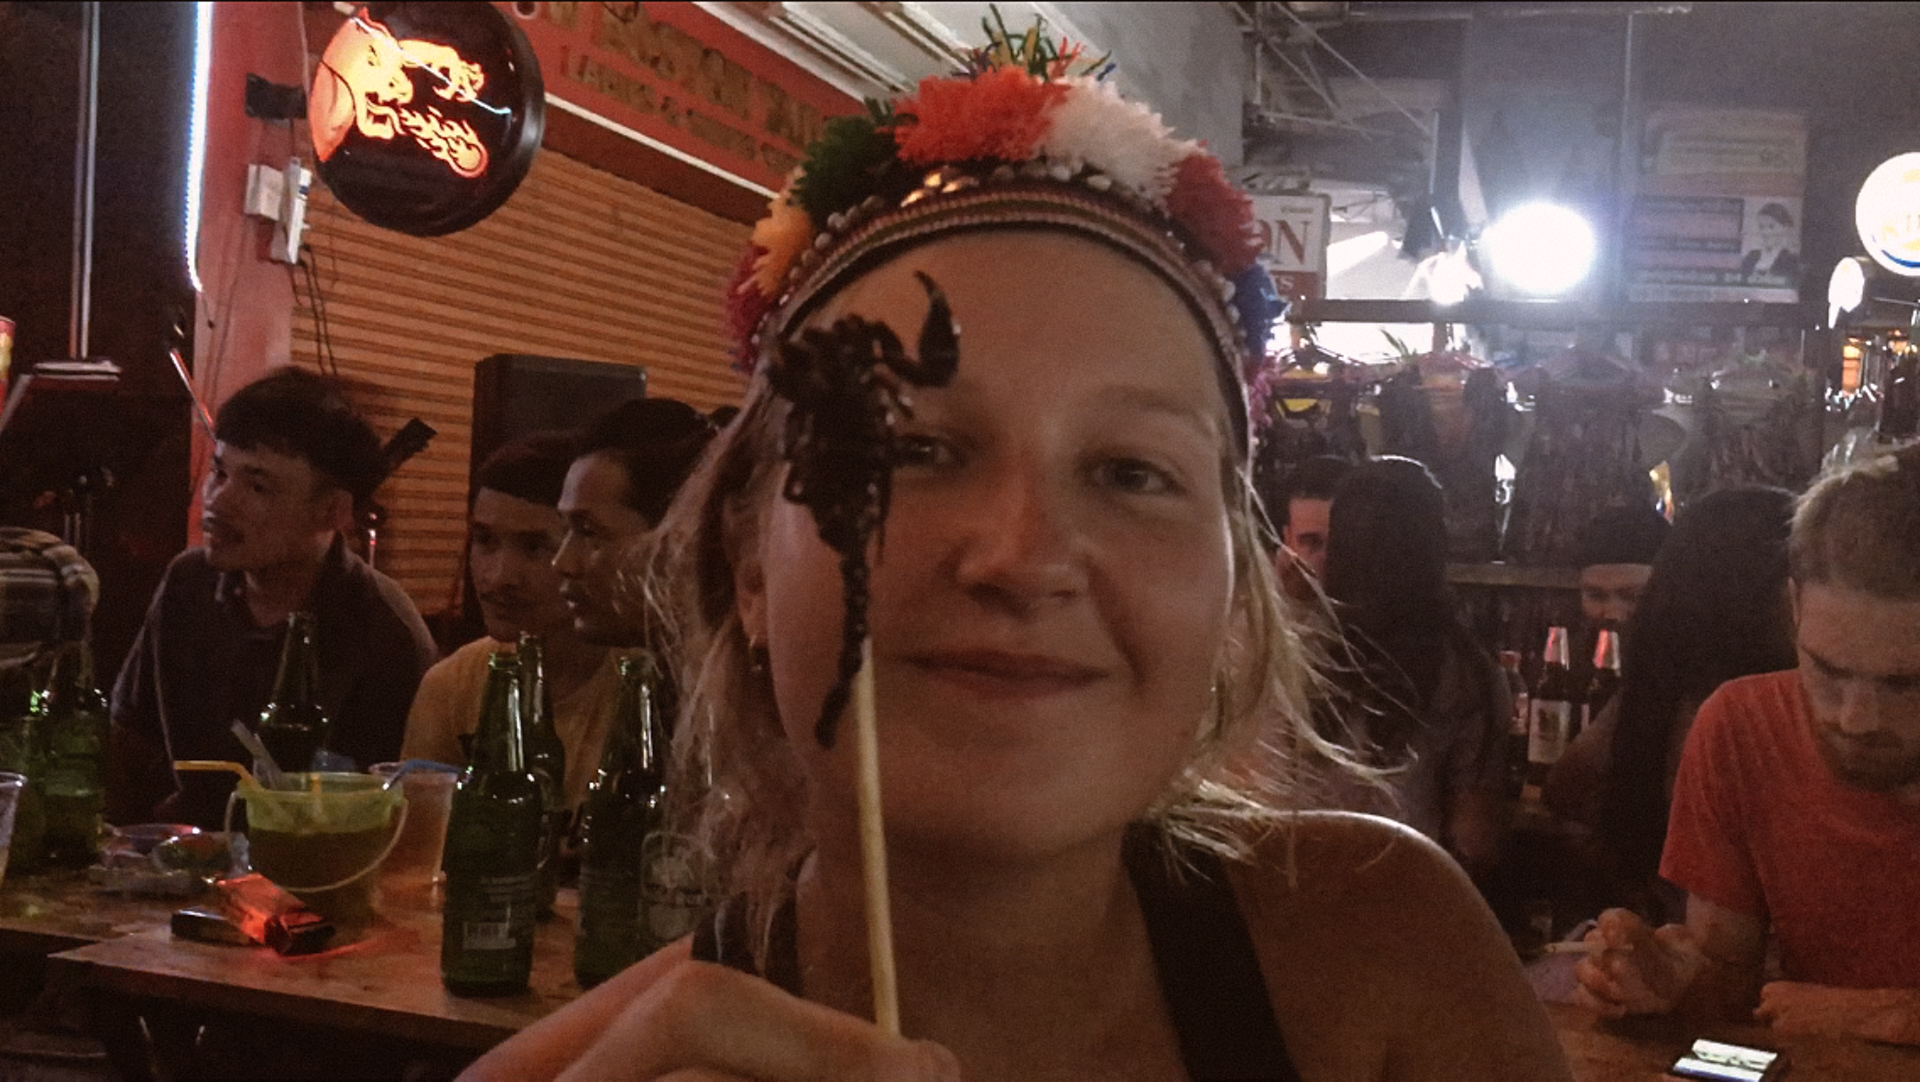 Alis eating a scorpion Khao San Road Bangkok